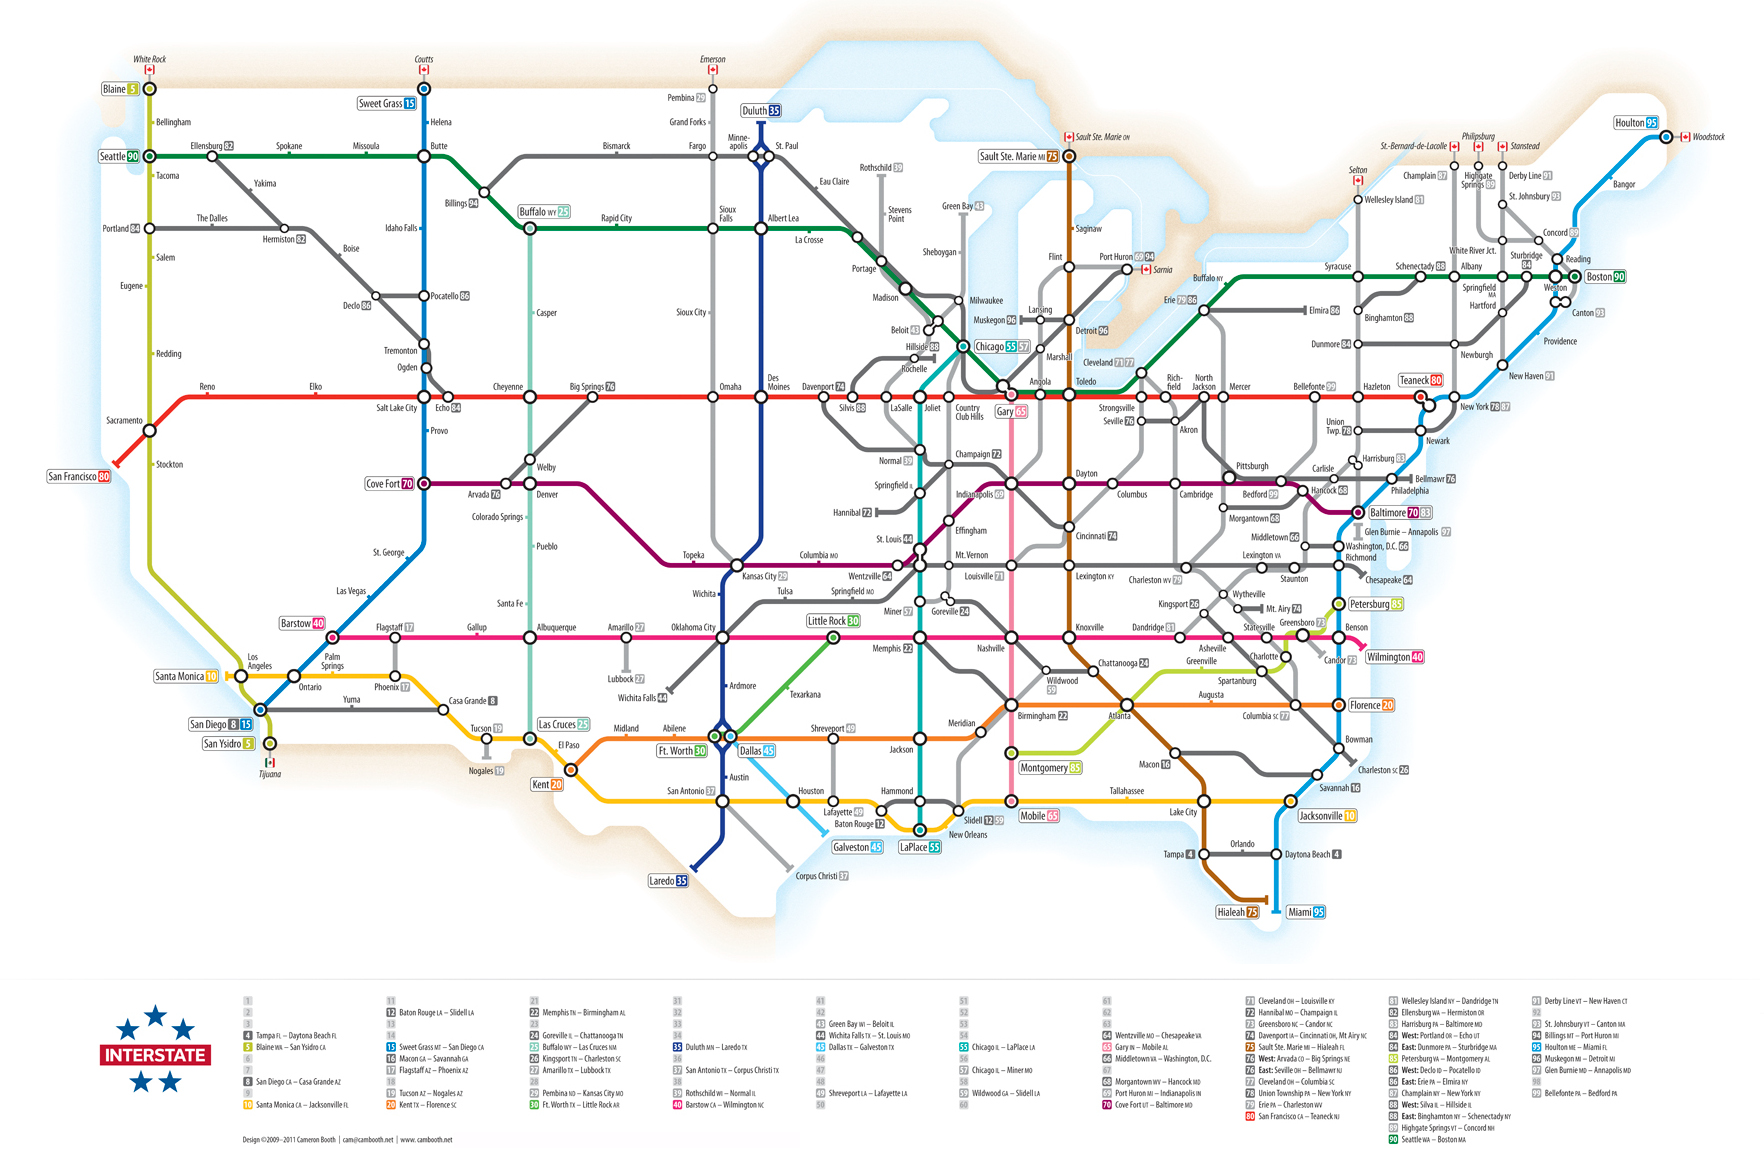 Us Interstate Map Infographic: U.S. Interstate Highways, as a Transit Map Us Interstate Map